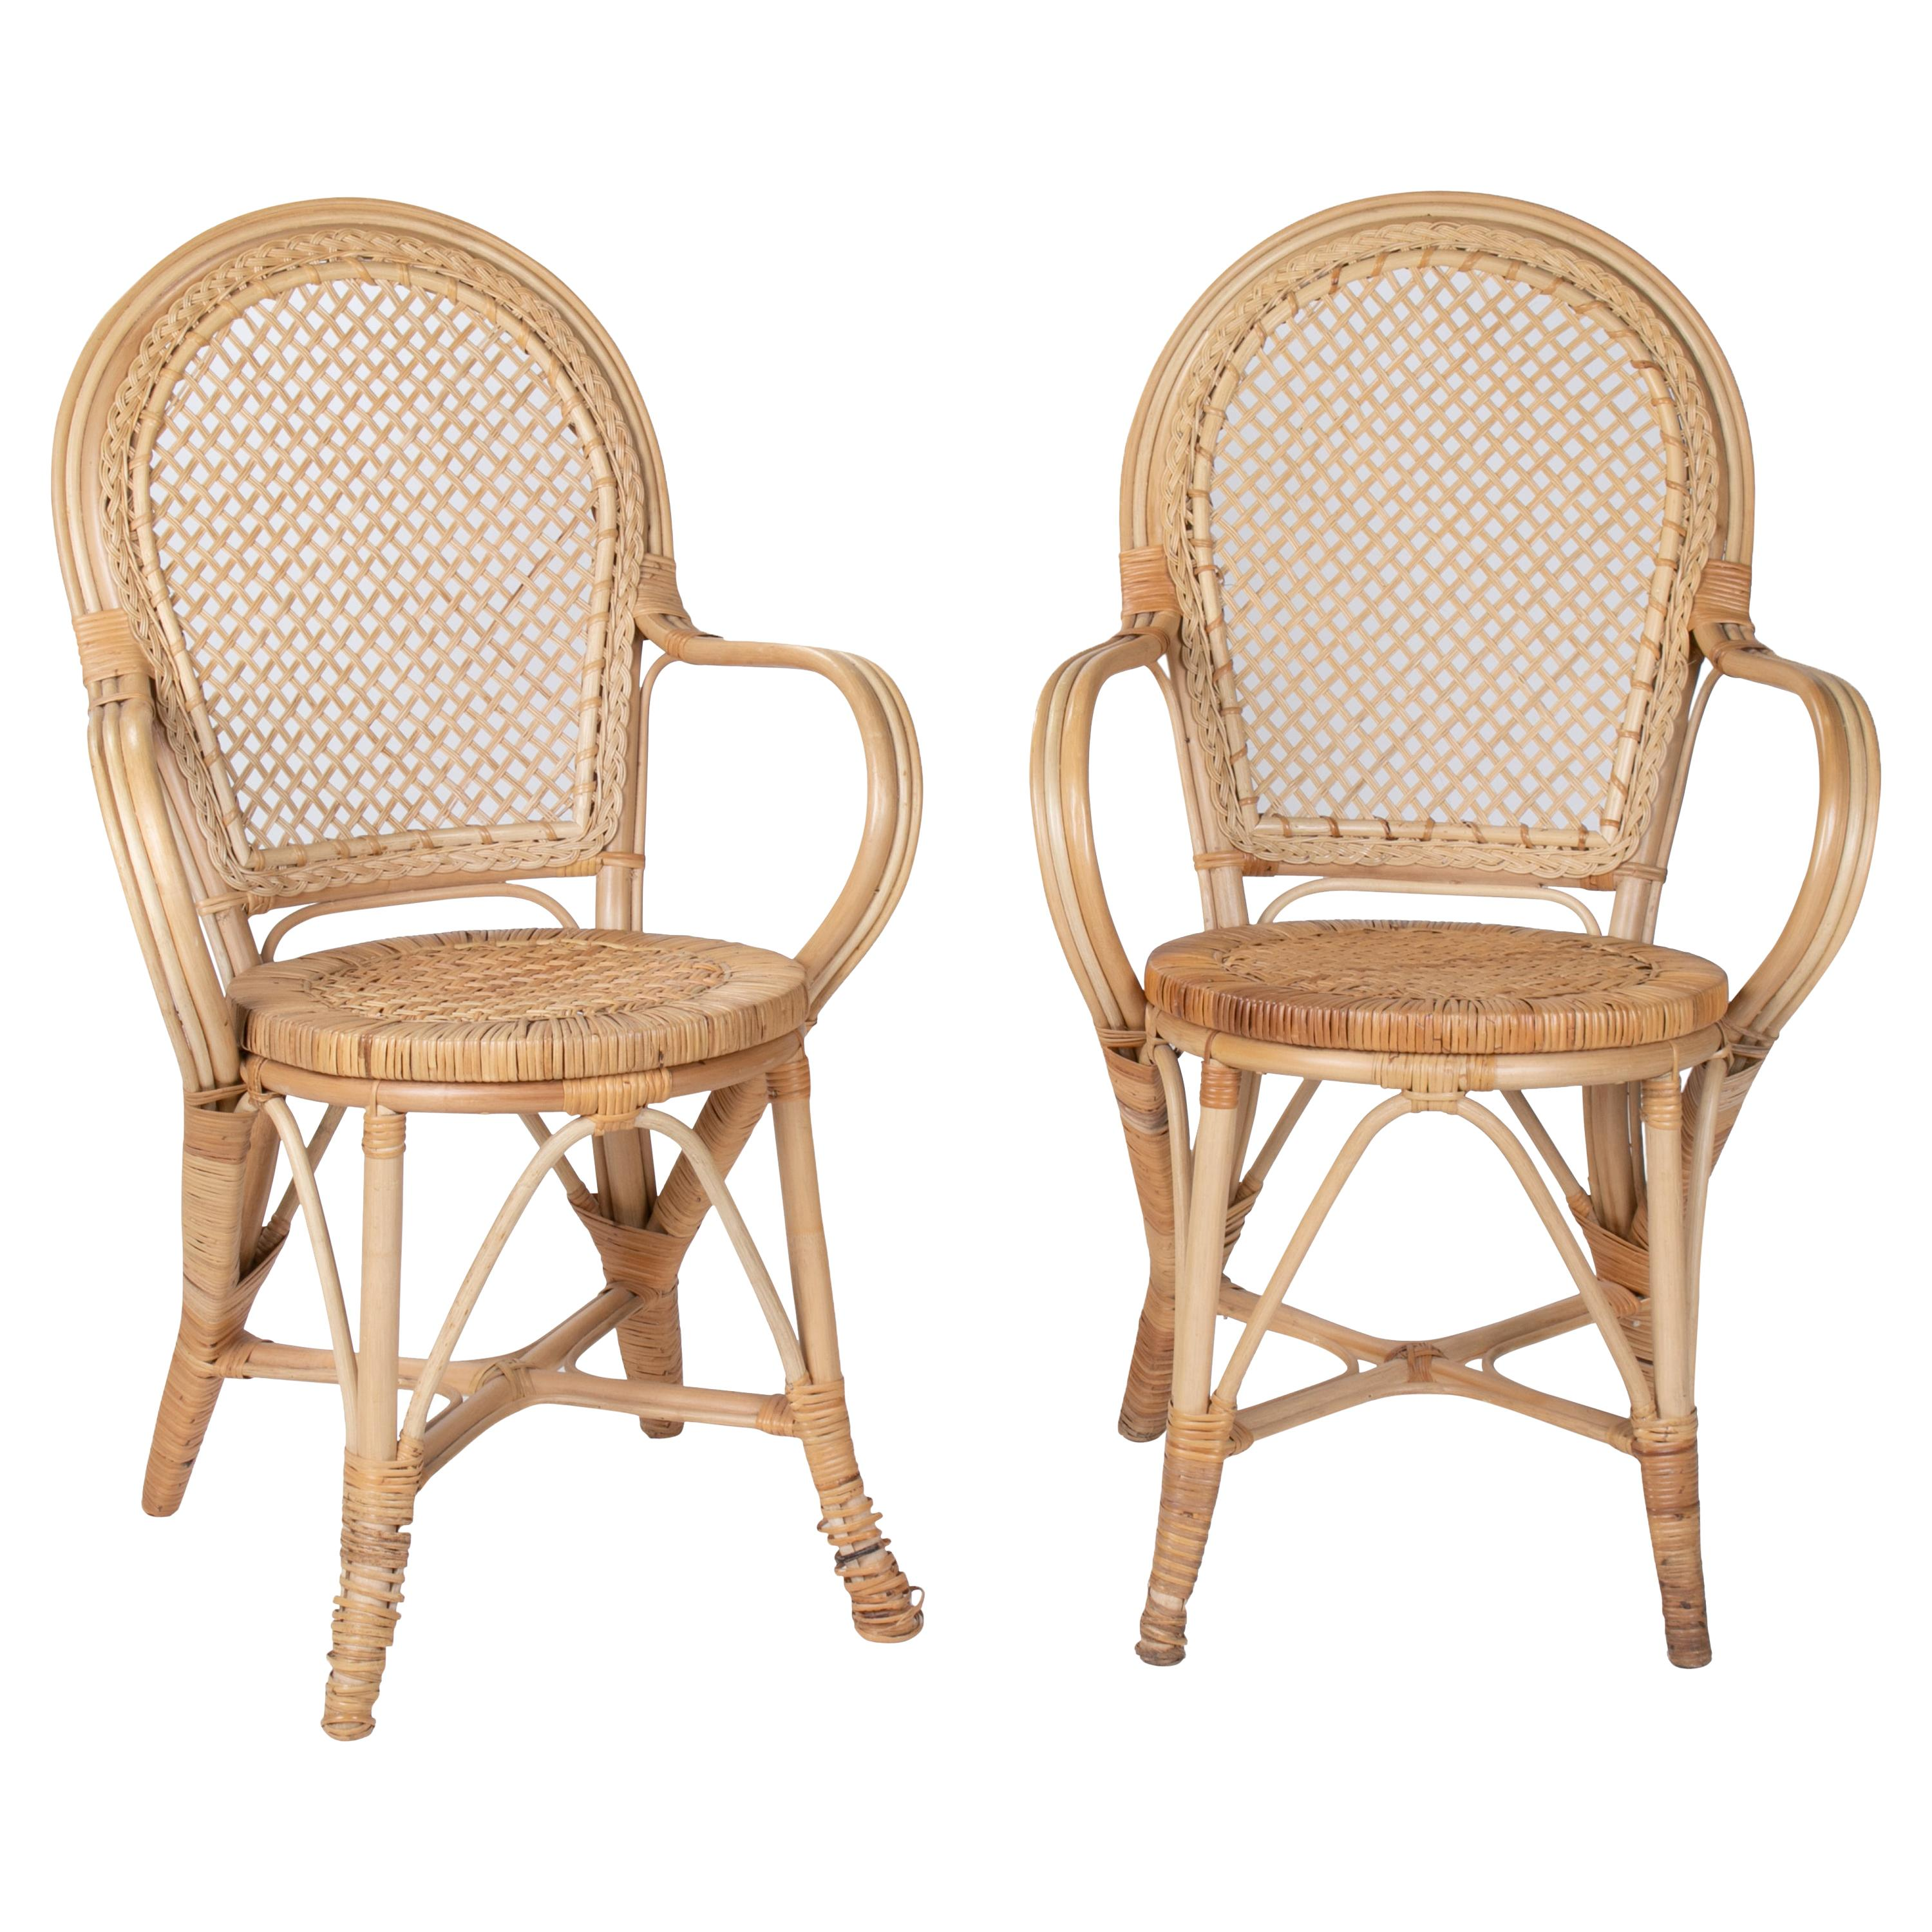 1970s Pair of Spanish Bamboo and Wicker Armchairs